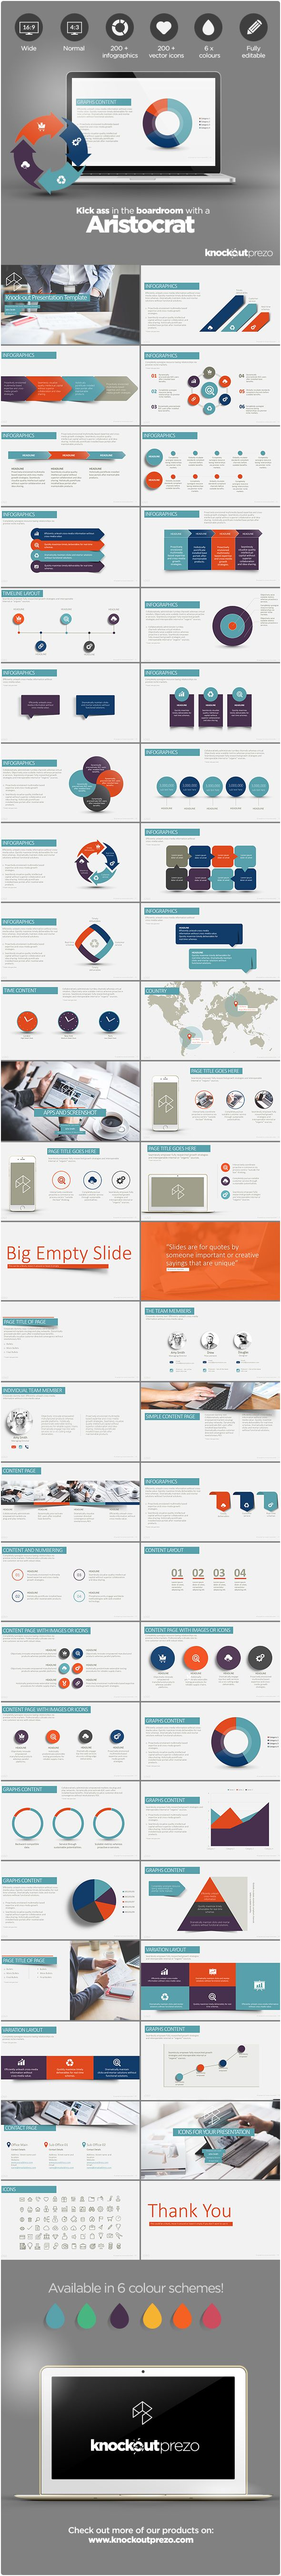 Aristocrat PowerPoint Template. Download here: http://graphicriver.net/item/aristocrat-powerpoint-template/16079385?ref=ksioks もっと見る